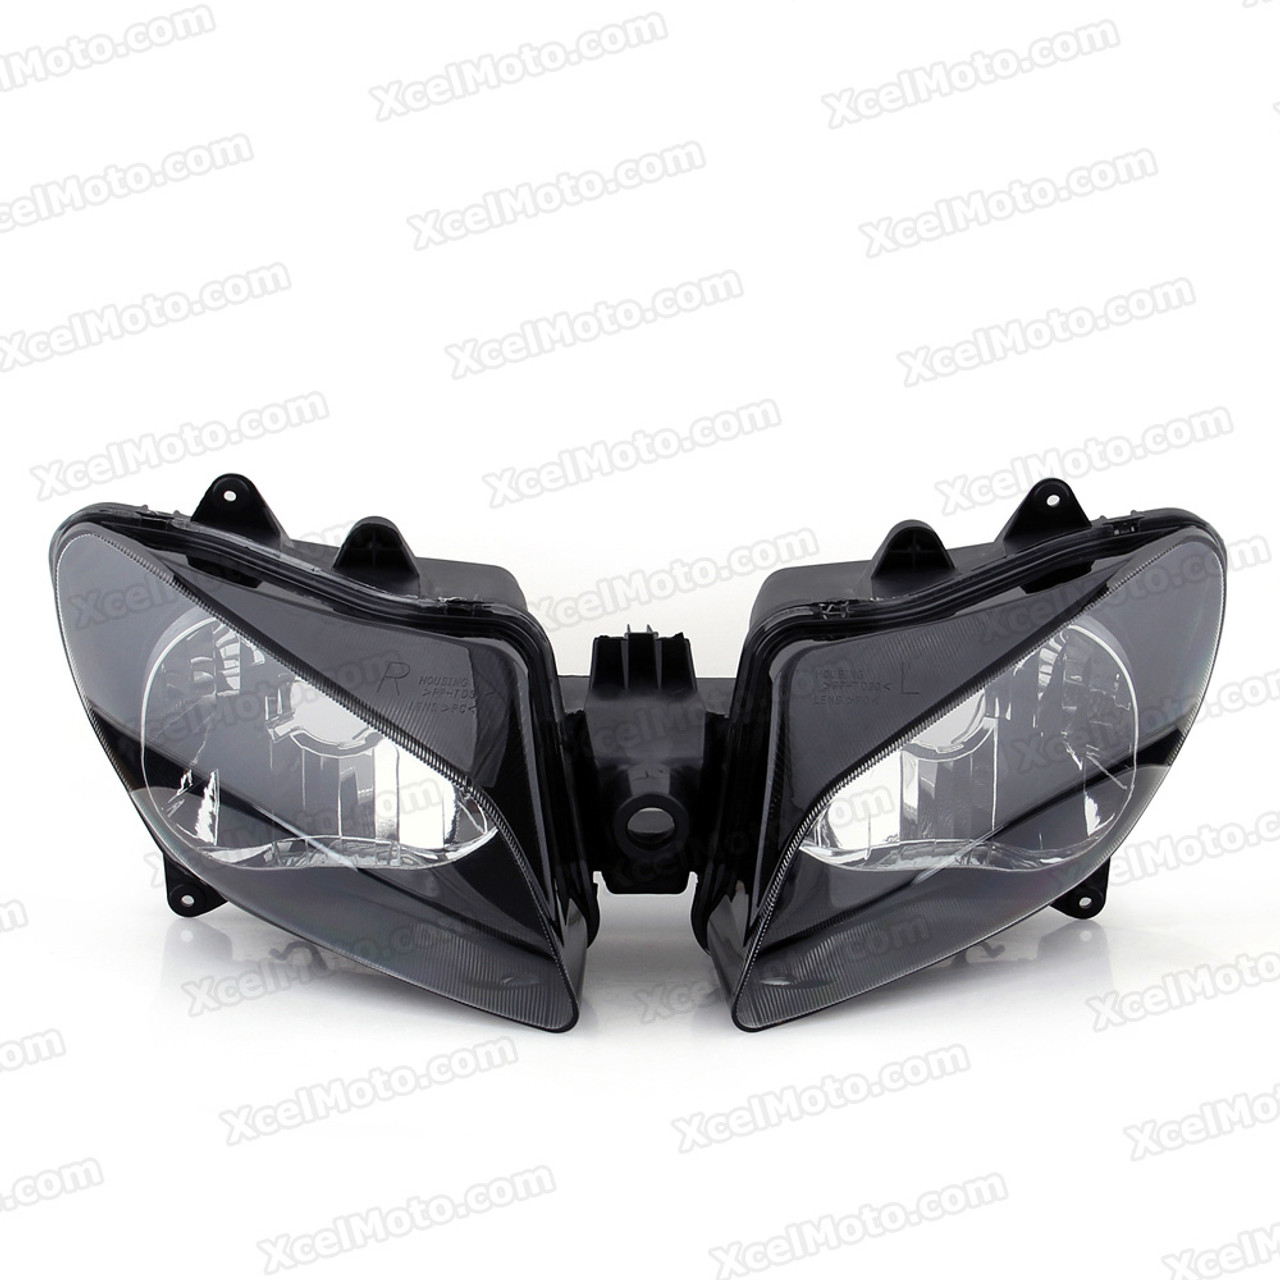 IN clear fit Yamaha yzf r1 yzf-r1 r1000 2009 2010 2011 headlight lamp assembly